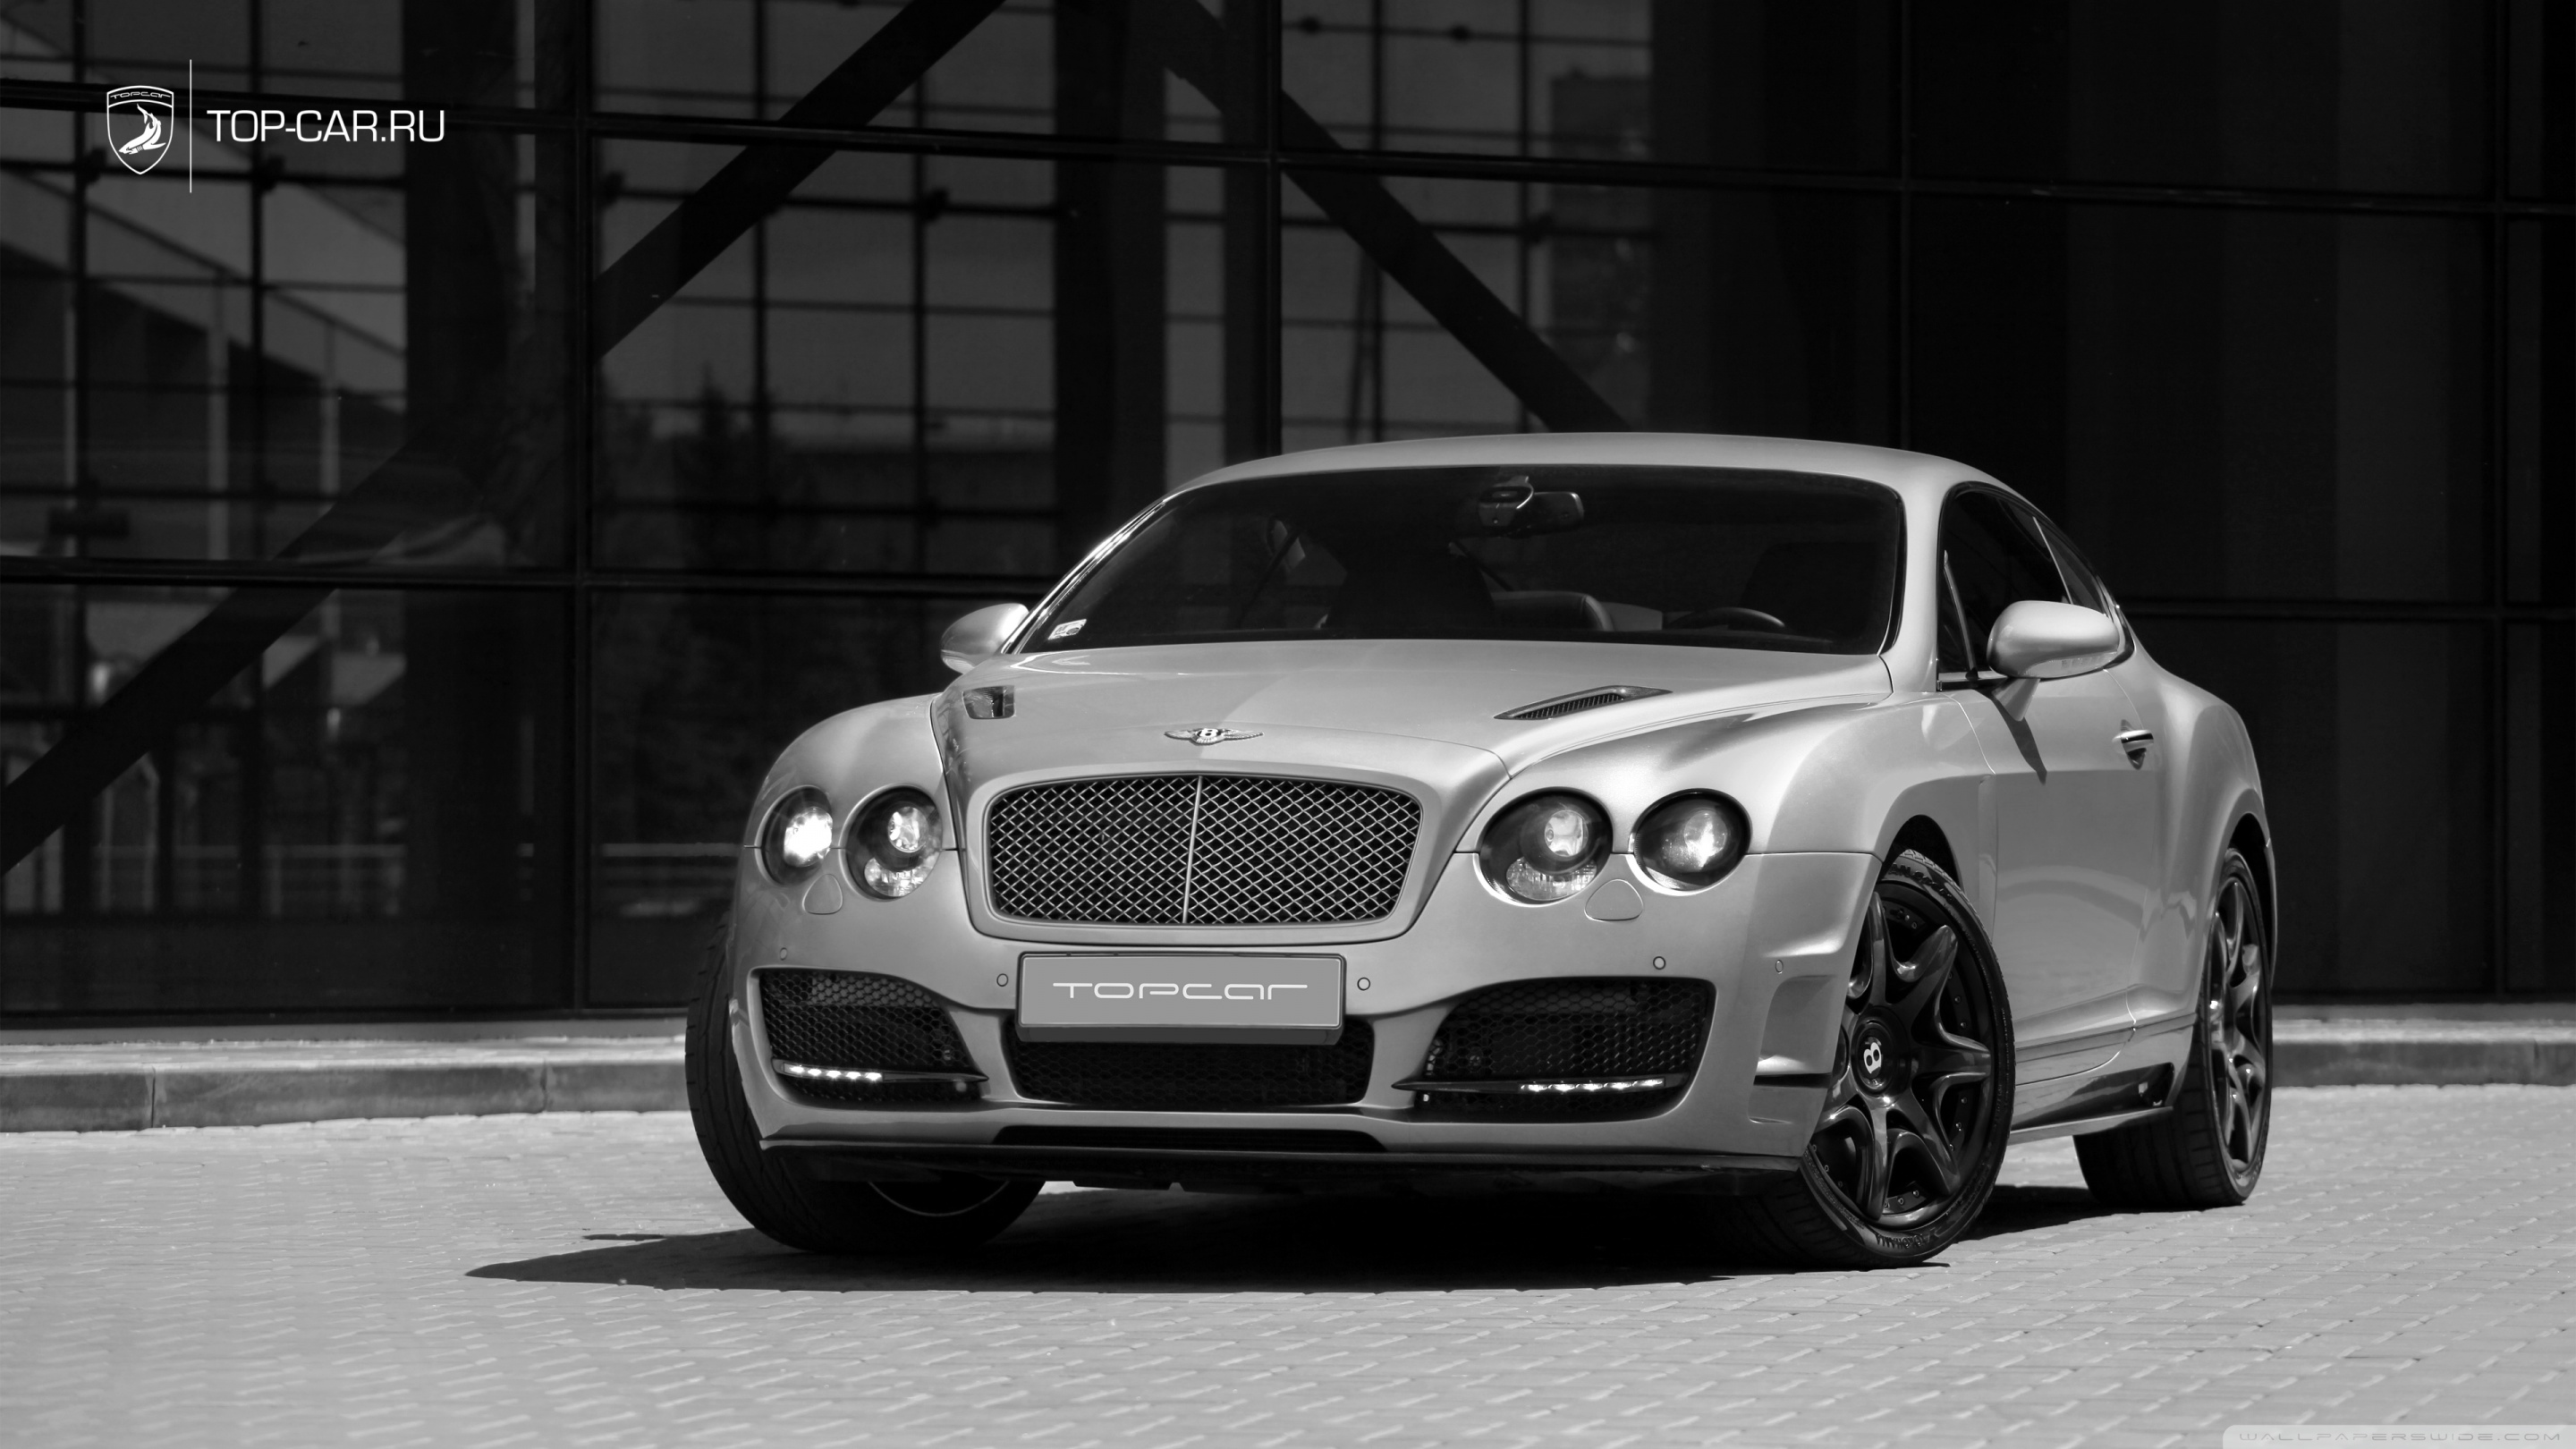 2880x1620 - Bentley Continental GT Wallpapers 37